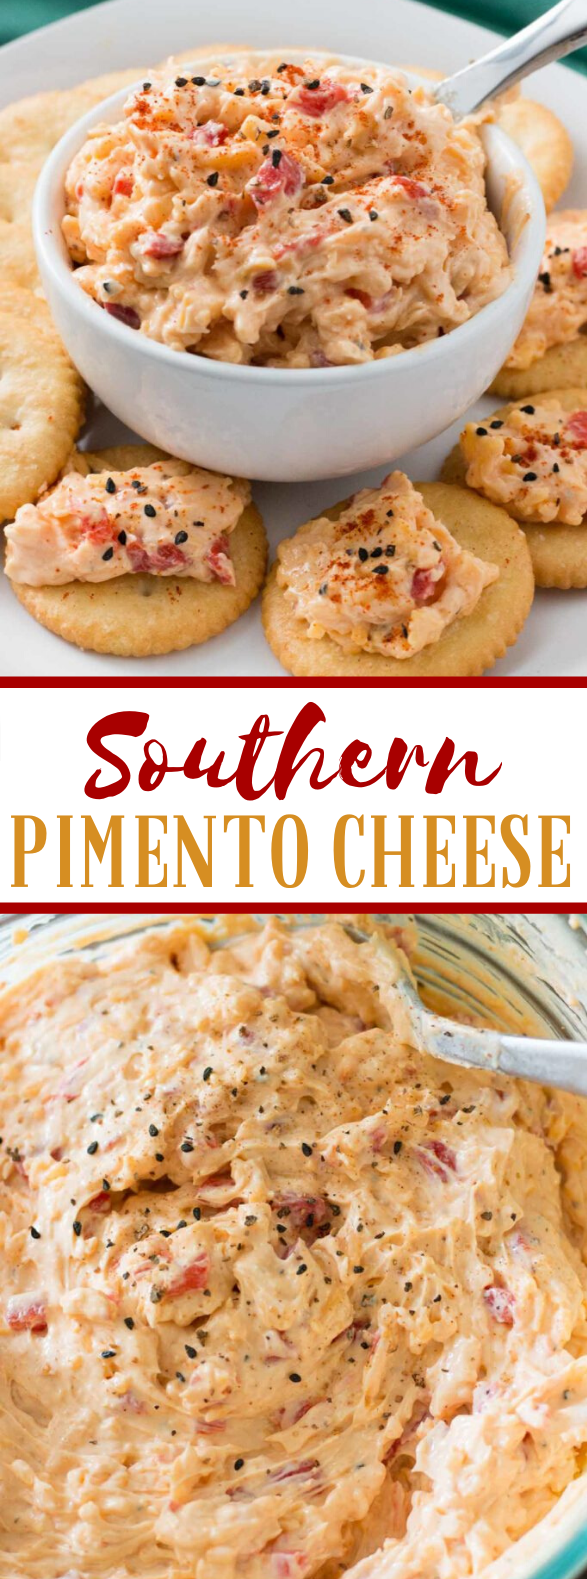 Southern Pimento Cheese #appetizers #snacks